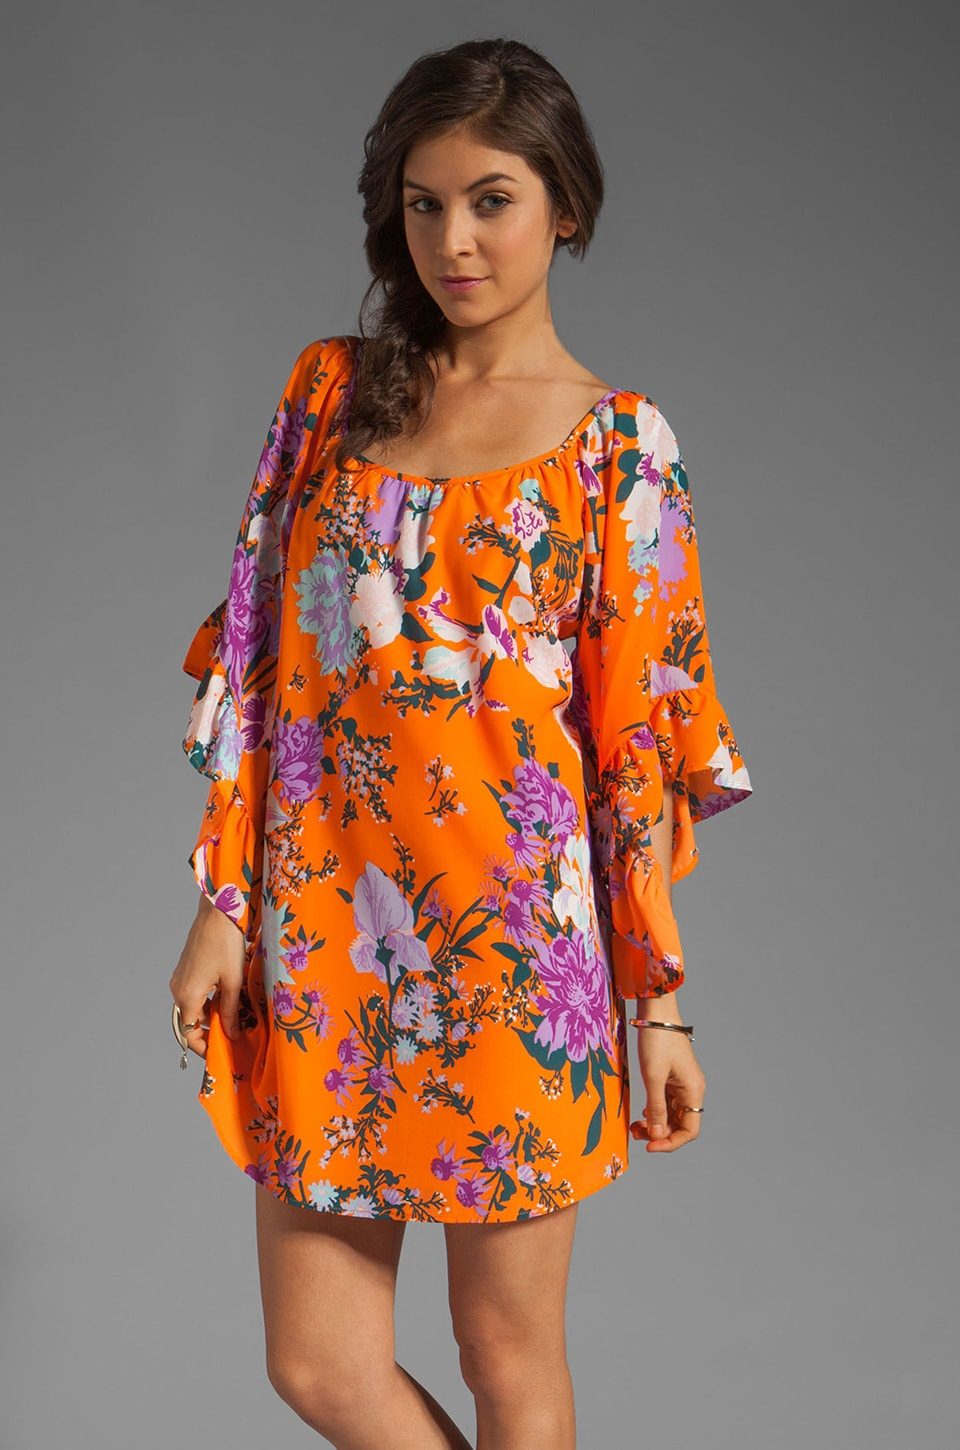 VOOM by Joy Han Sara Dress in Orange